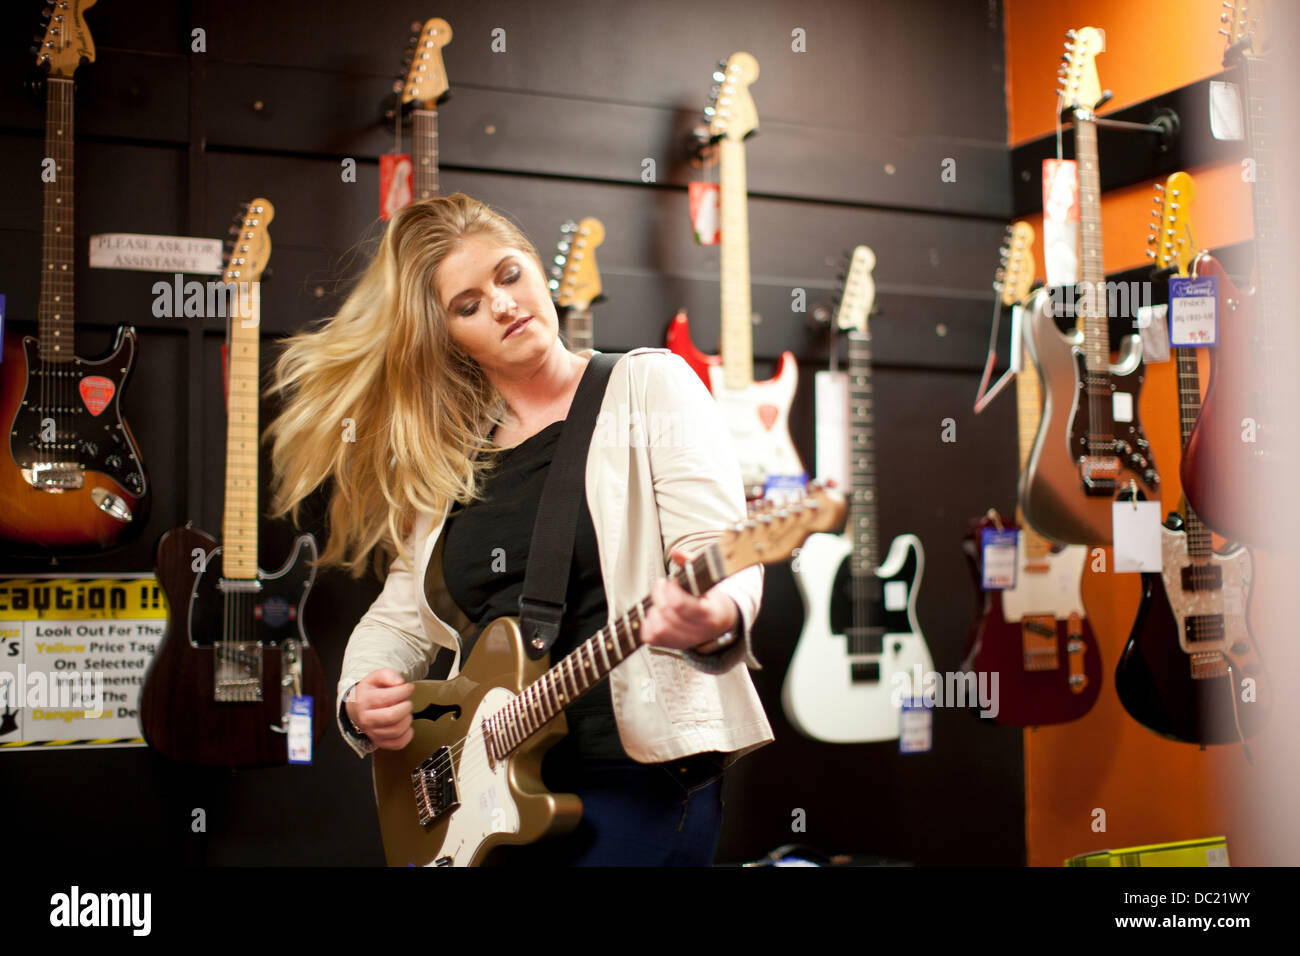 Young woman testing guitar in music store Stock Photo